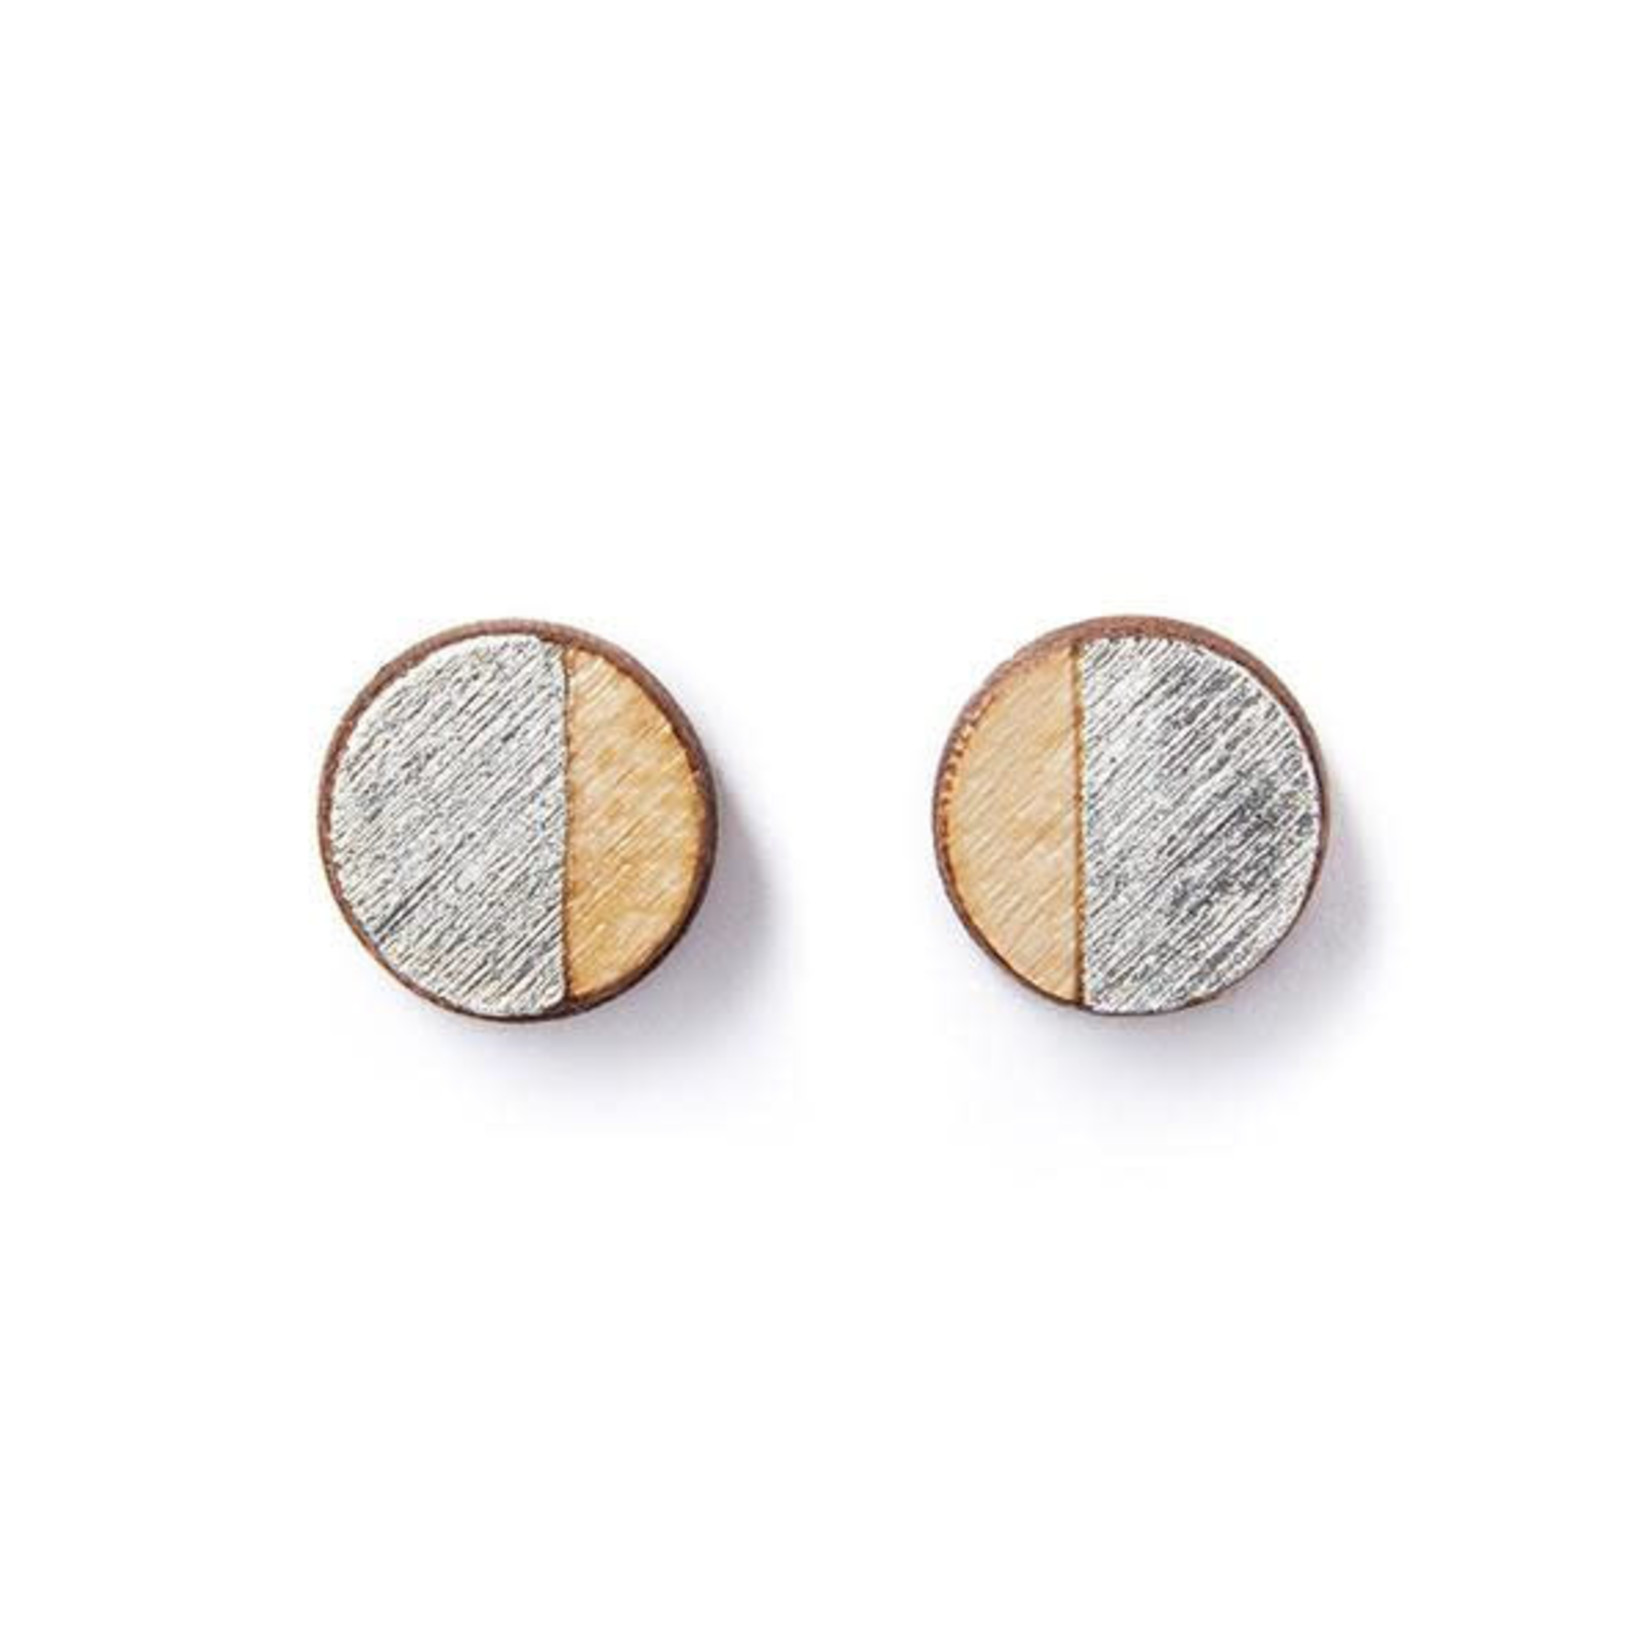 TREELINE AND TIDE ROUND STUDS - SILVER